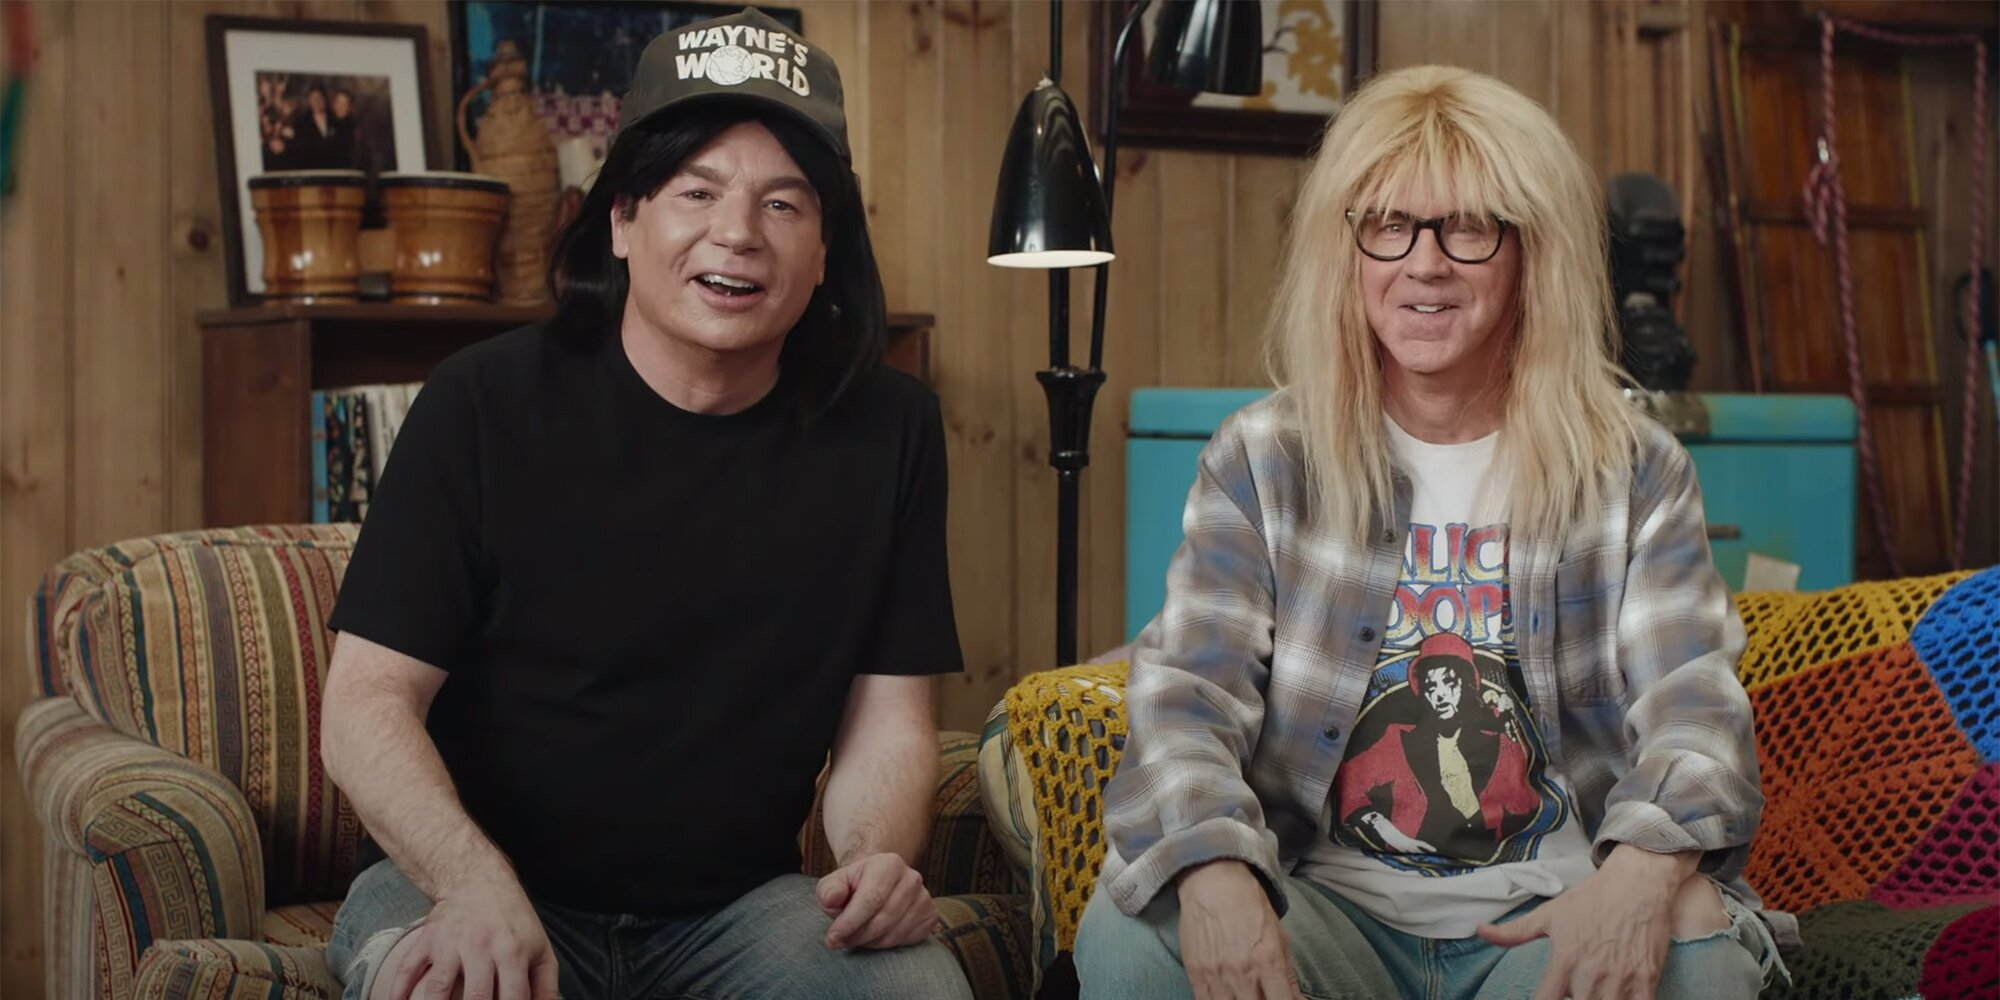 'Wayne's World' stars Mike Myers and Dana Carvey reunite in 'excellent' Super Bowl ad – Entertainment Weekly